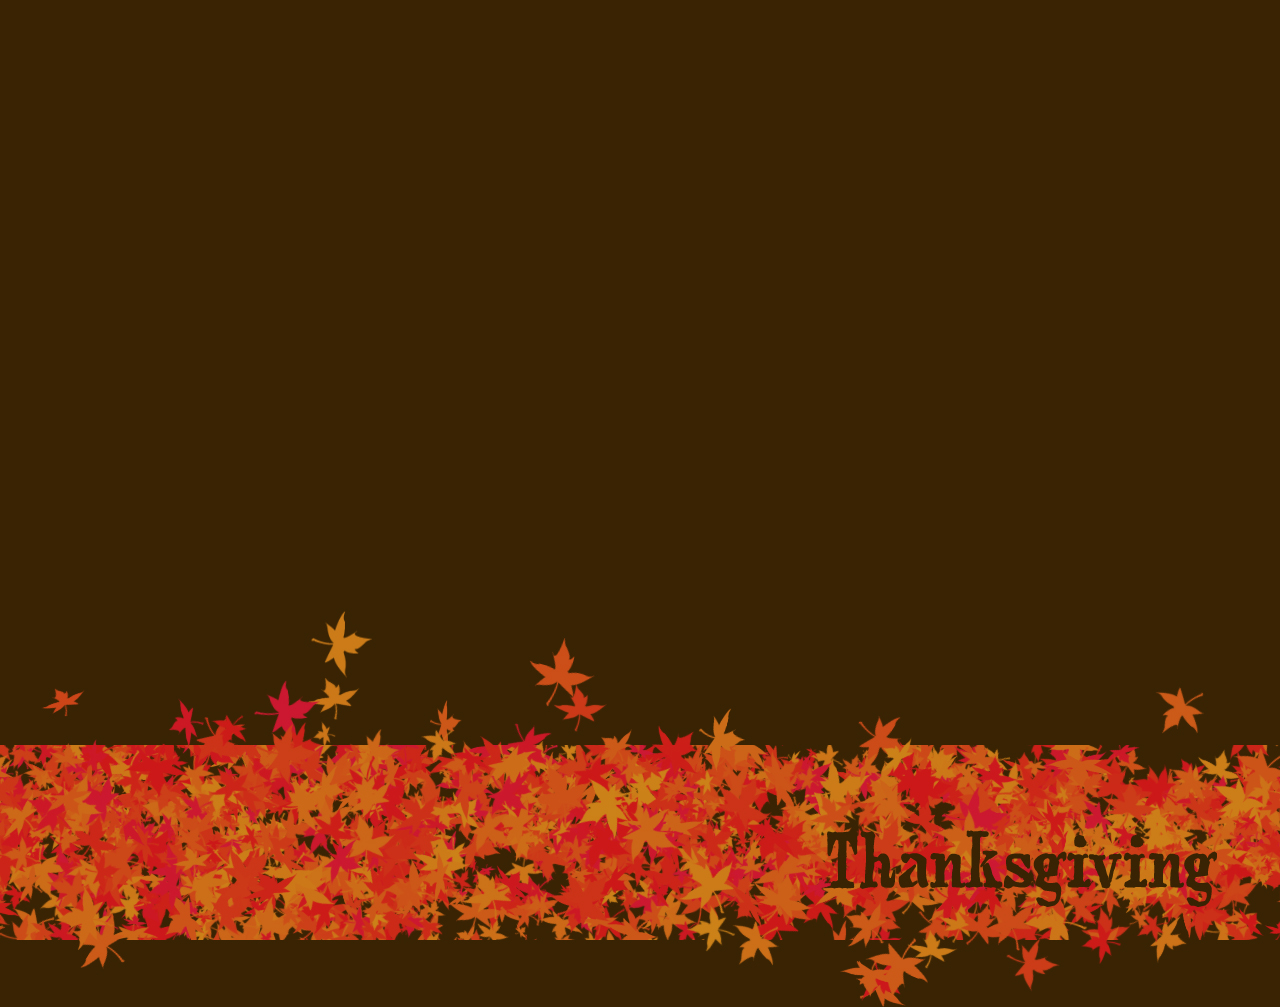 thanksgiving wallpapers greeting